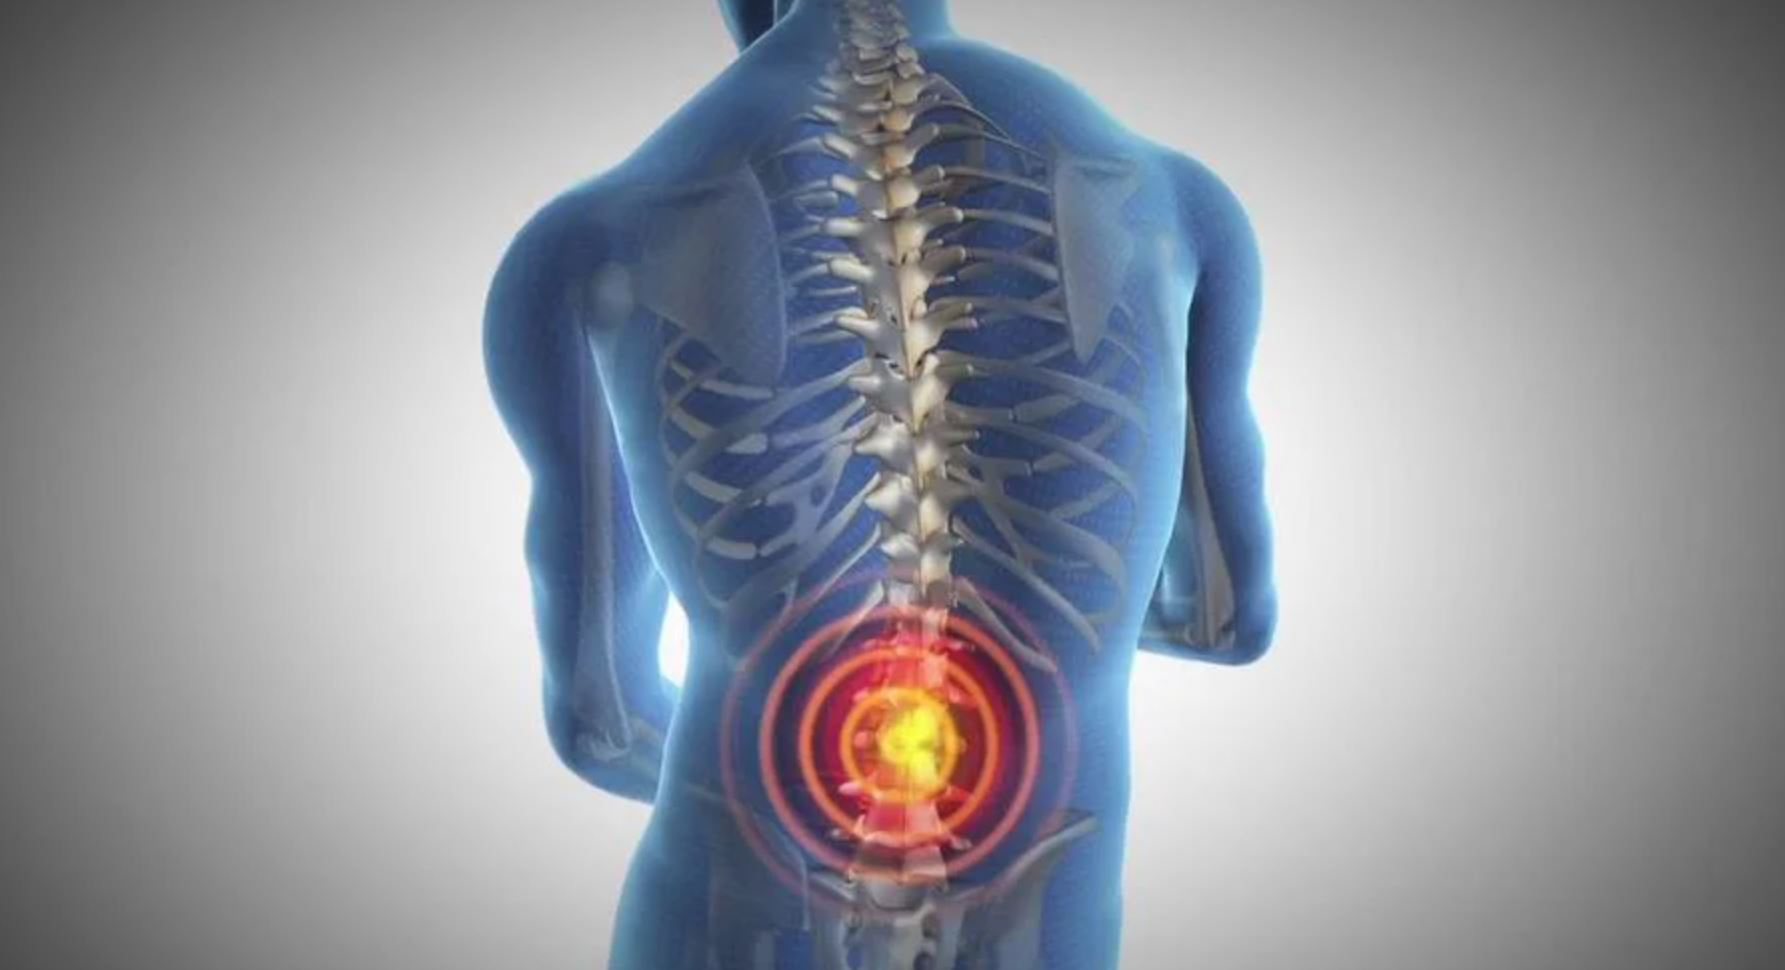 Chronic Back Pain Linked to Three Genetic Variants